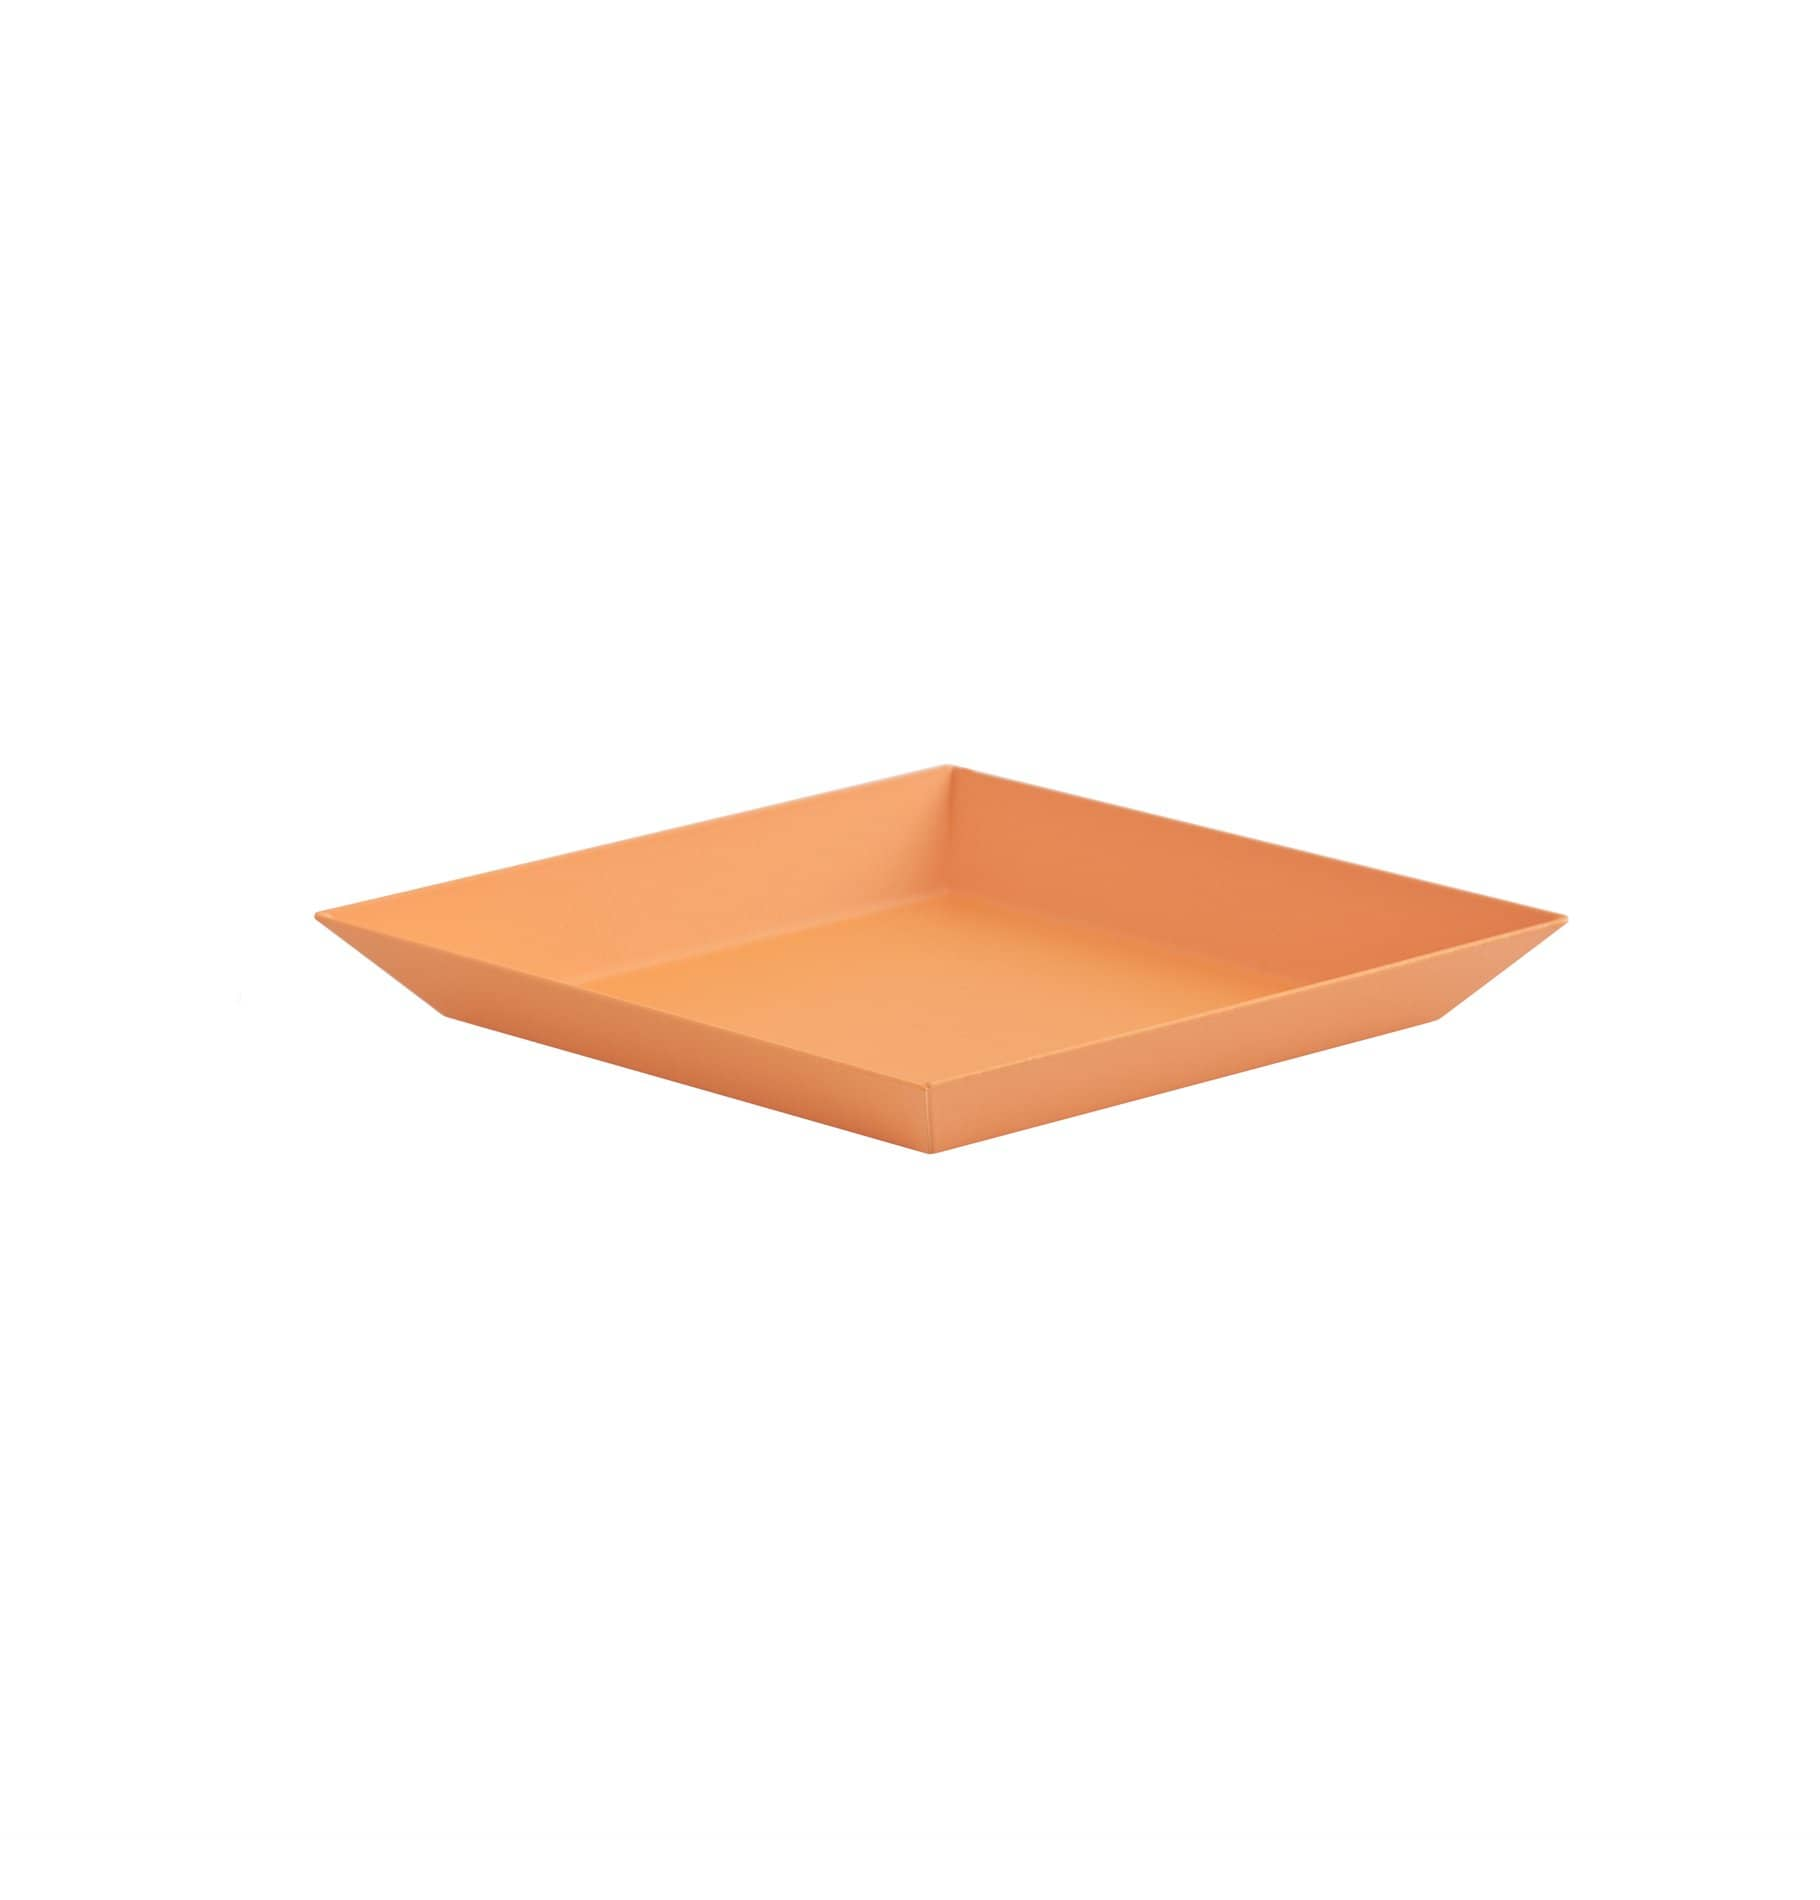 HAY Kaleido Tray - Orange XS - HUH. Store